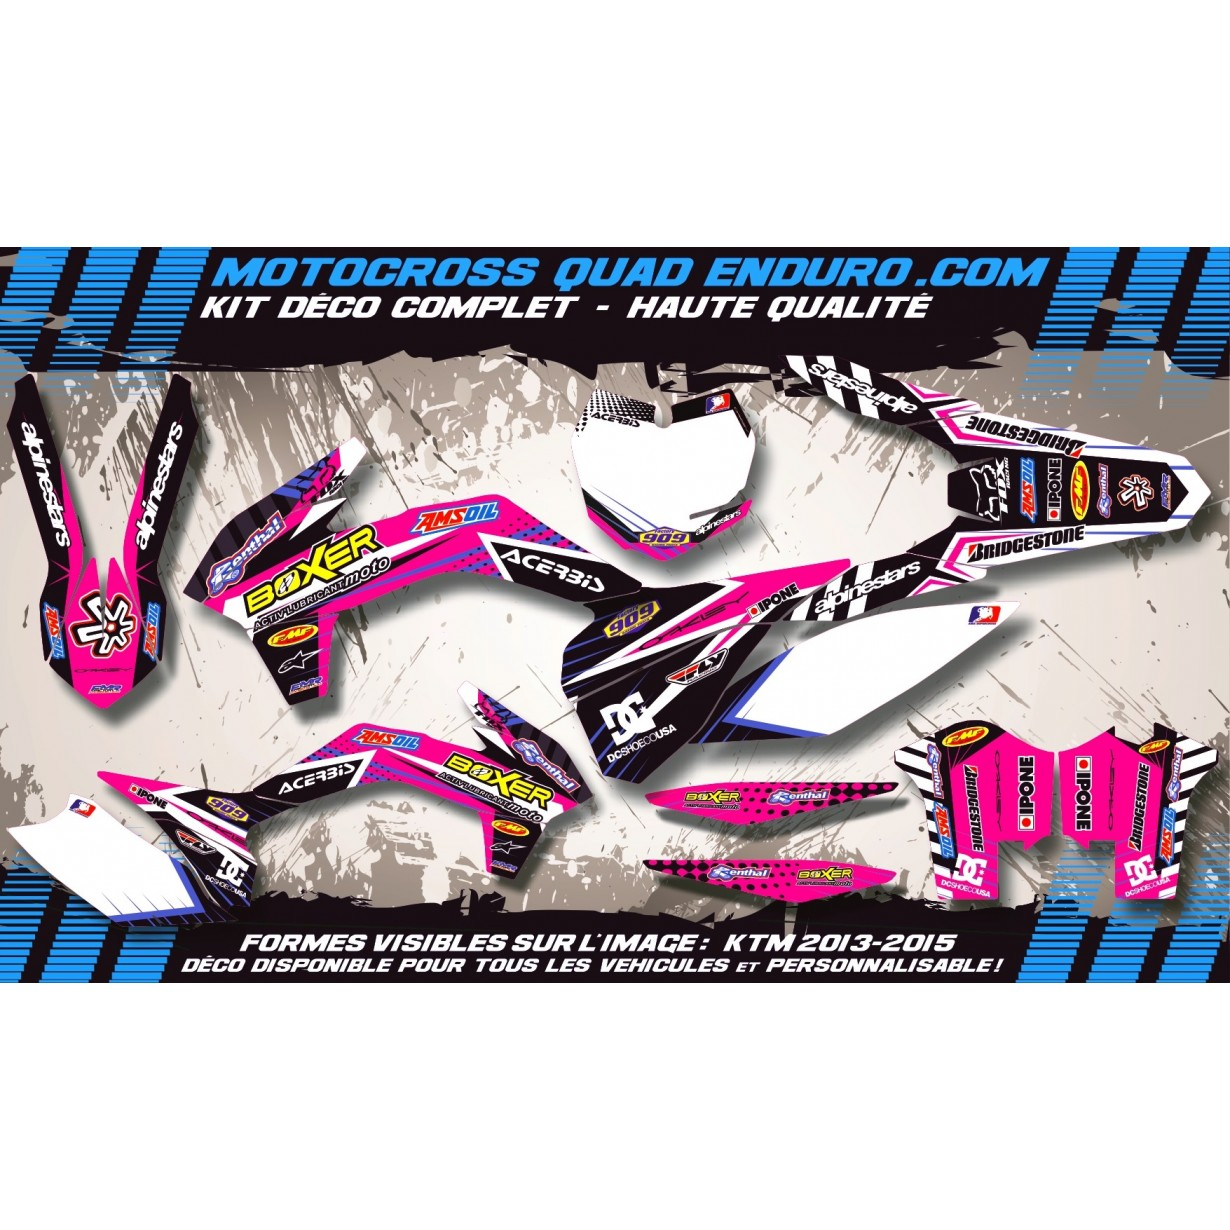 KIT DÉCO Perso 125 / 250 RM 96-98 BOXER MA1F